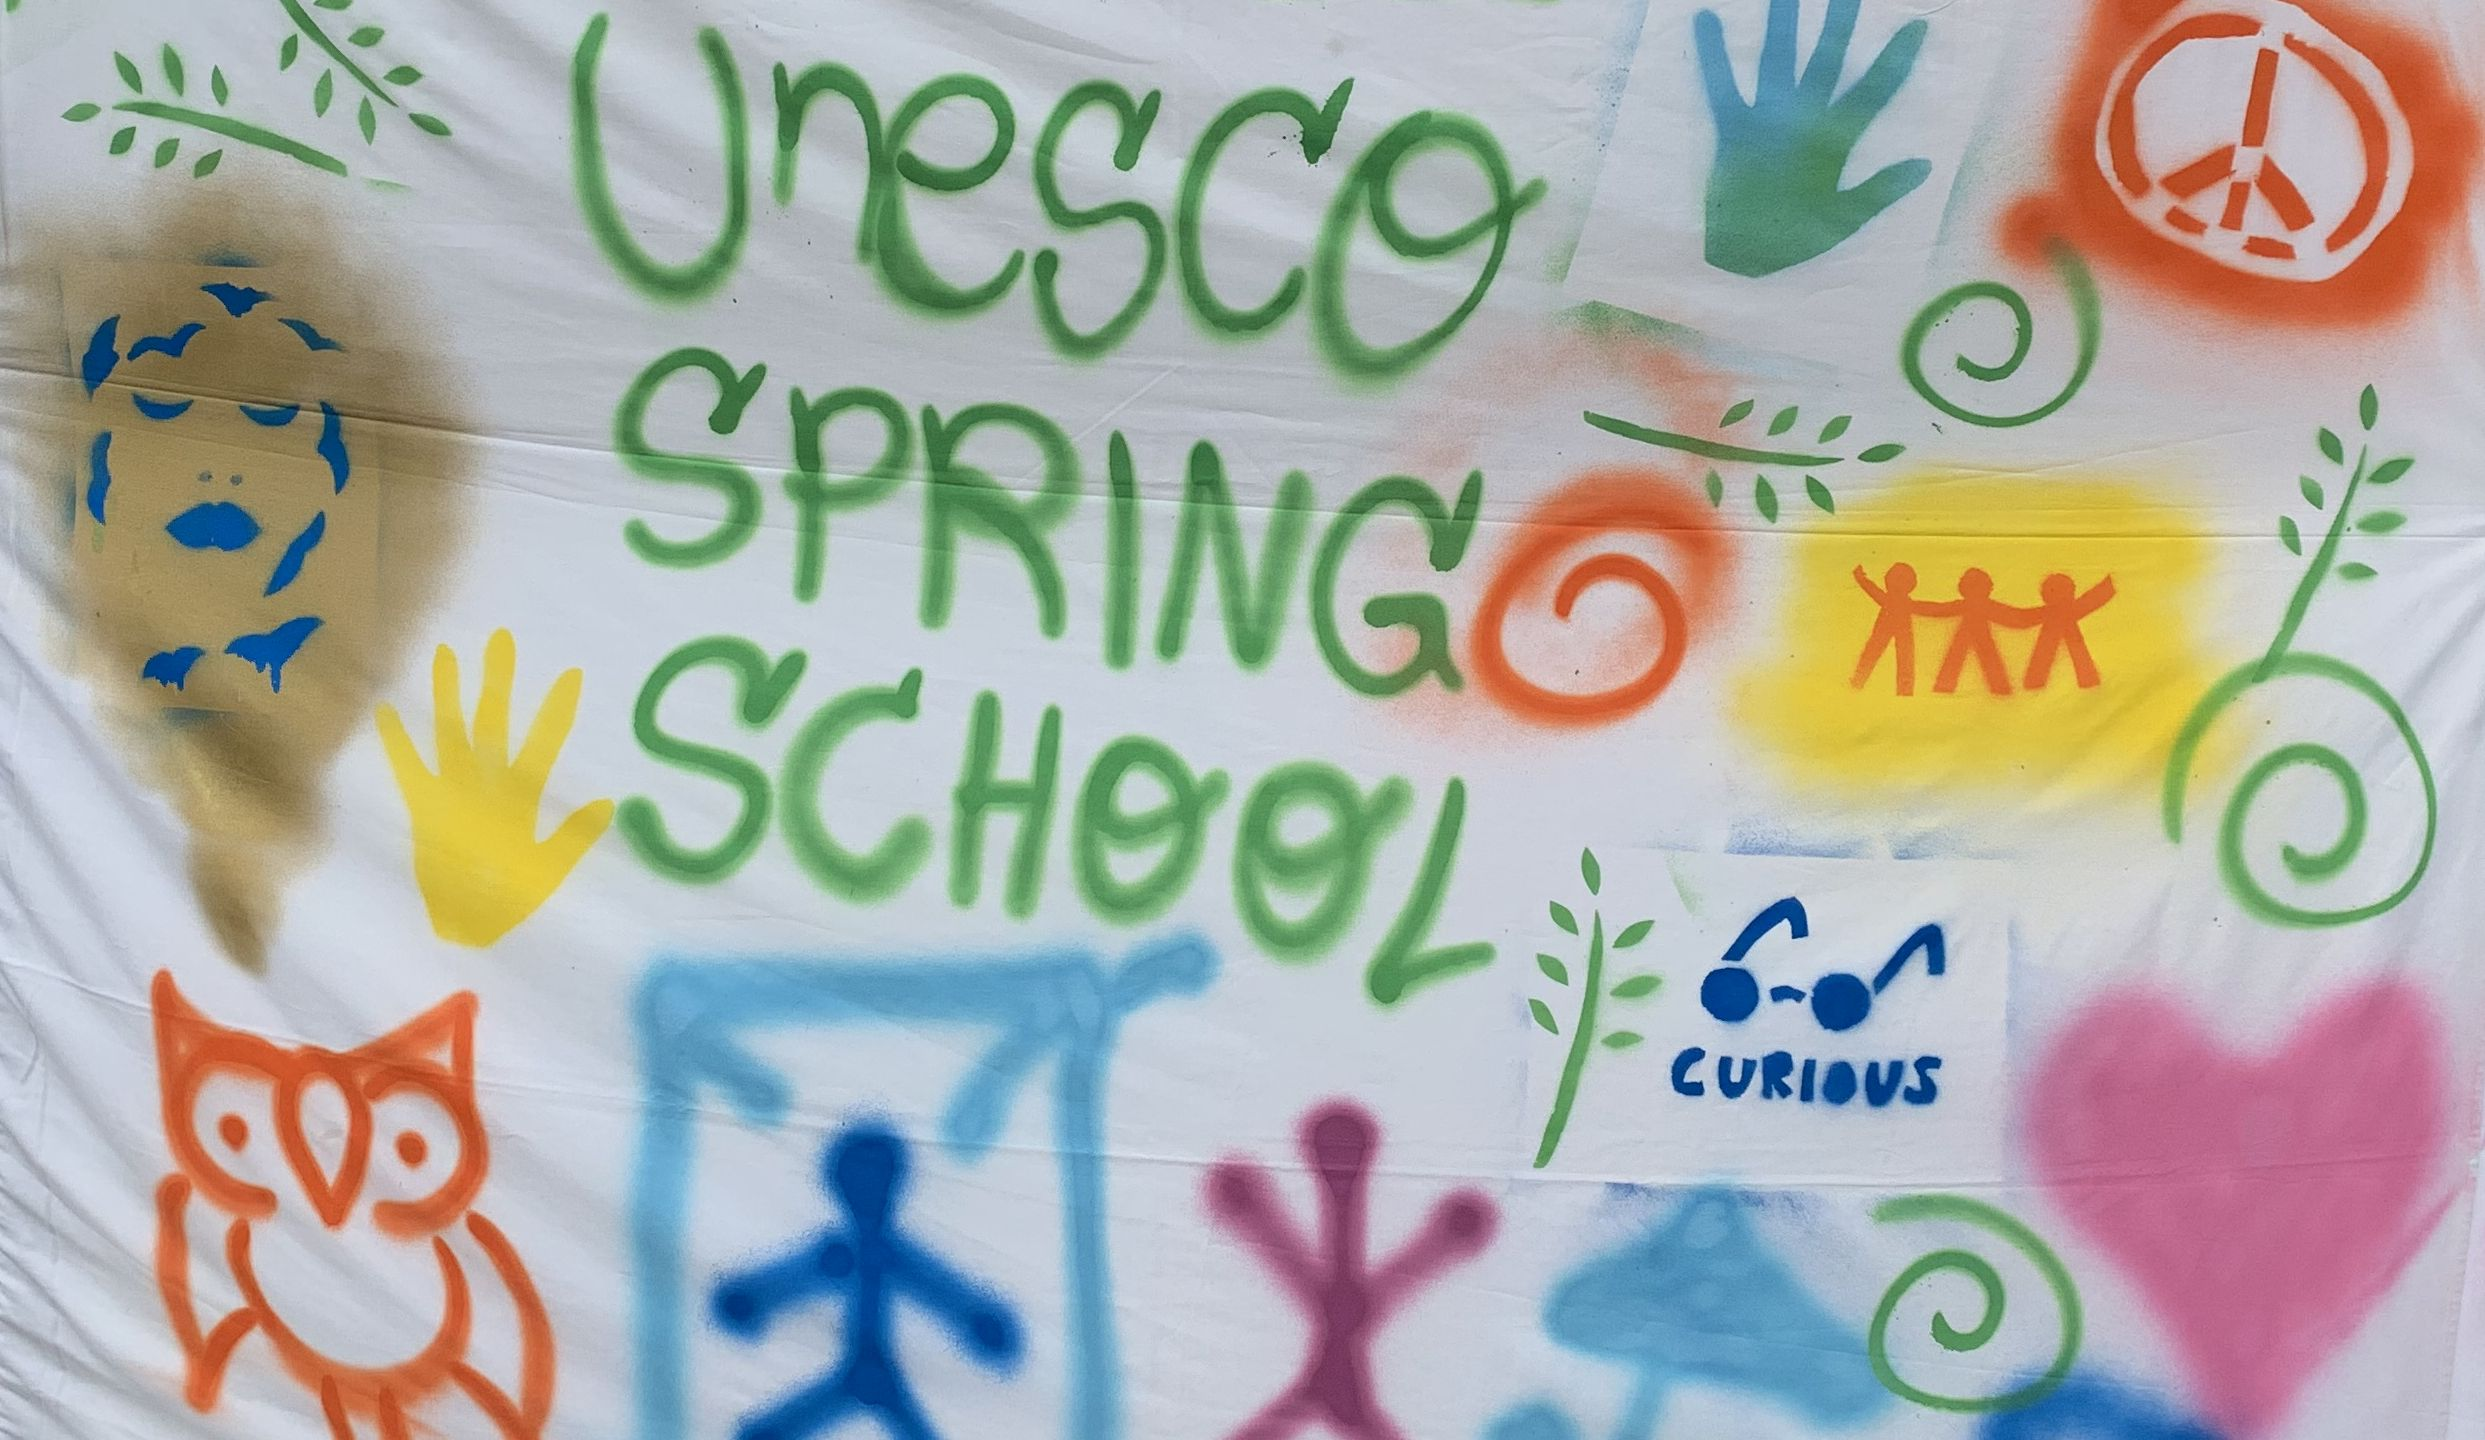 SprayPeace Banner from Spring School 2019